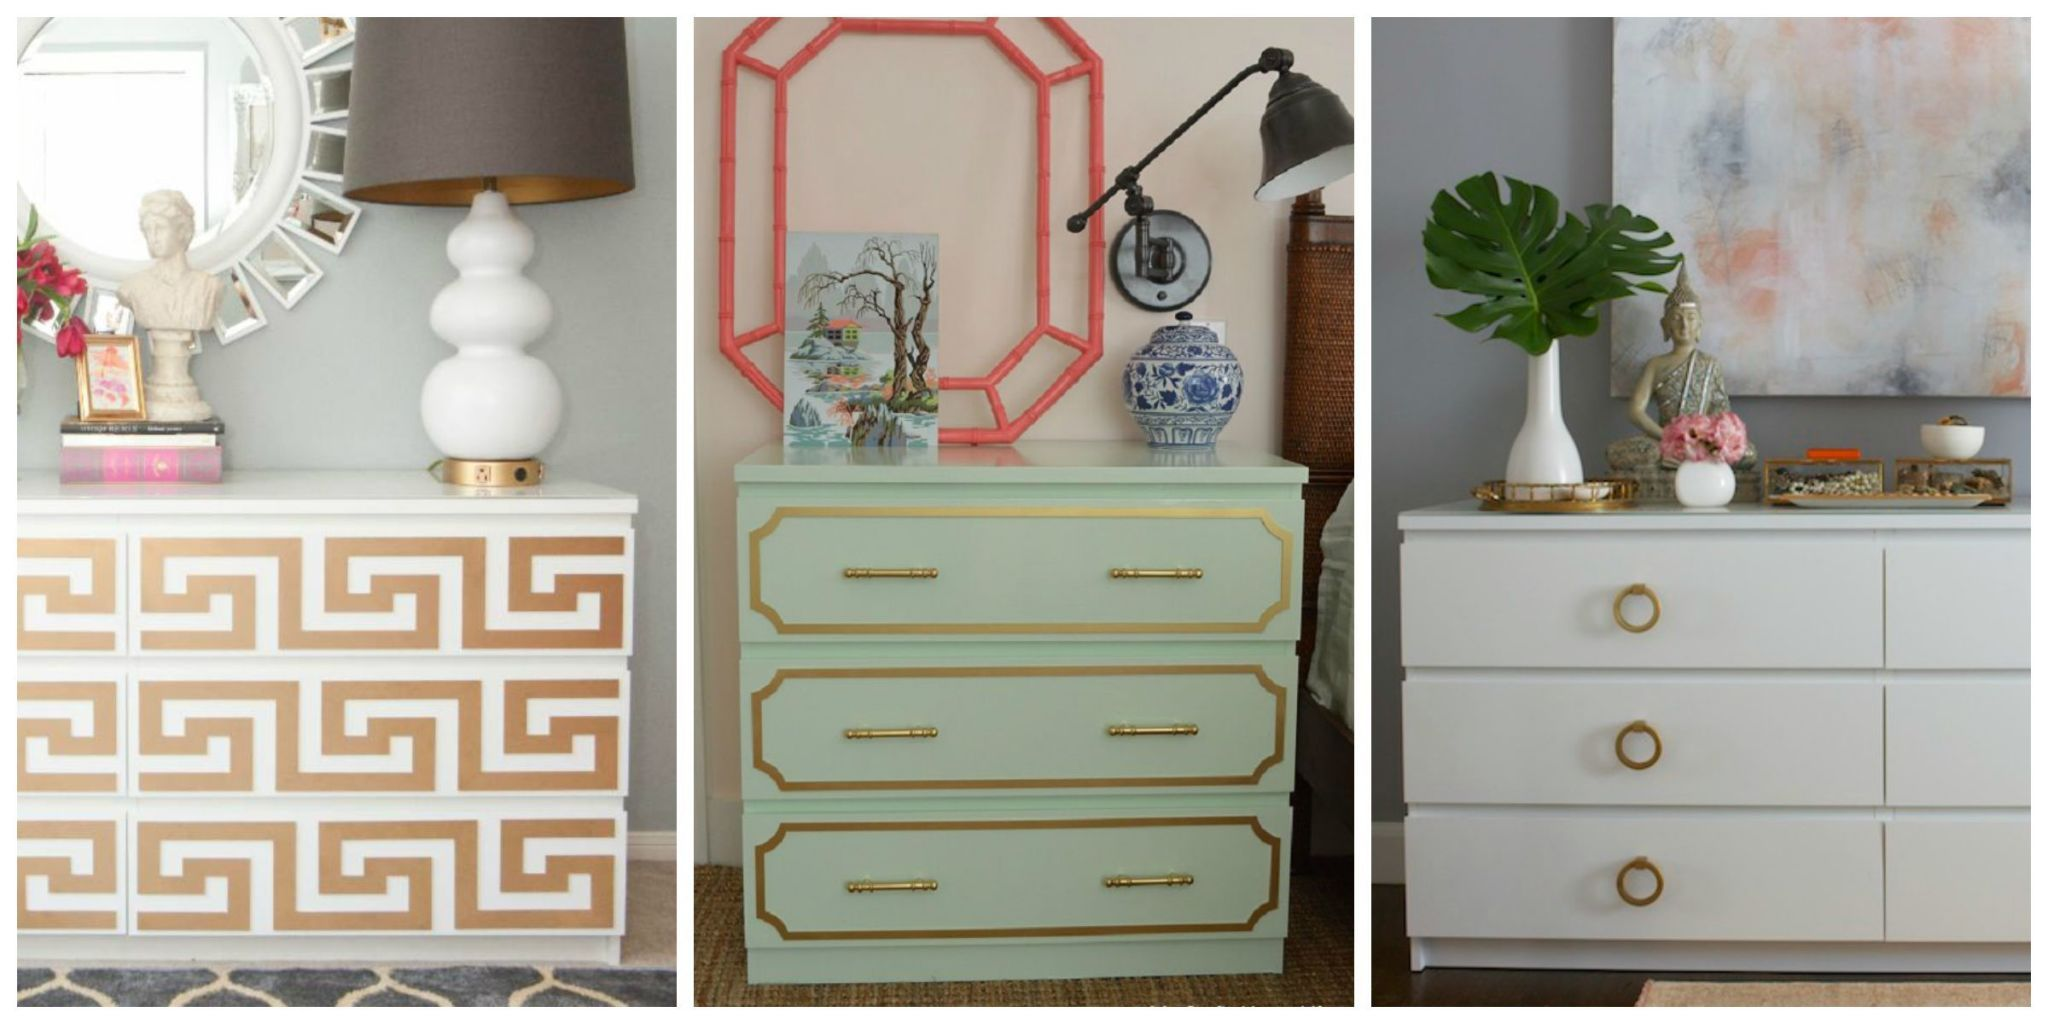 Merveilleux The Best Selling MALM Is Virtually Unrecognizable In These Impressive DIY  Ideas. If You Already Own This Discontinued Dresser, Donu0027t Forget To Anchor  It To ...